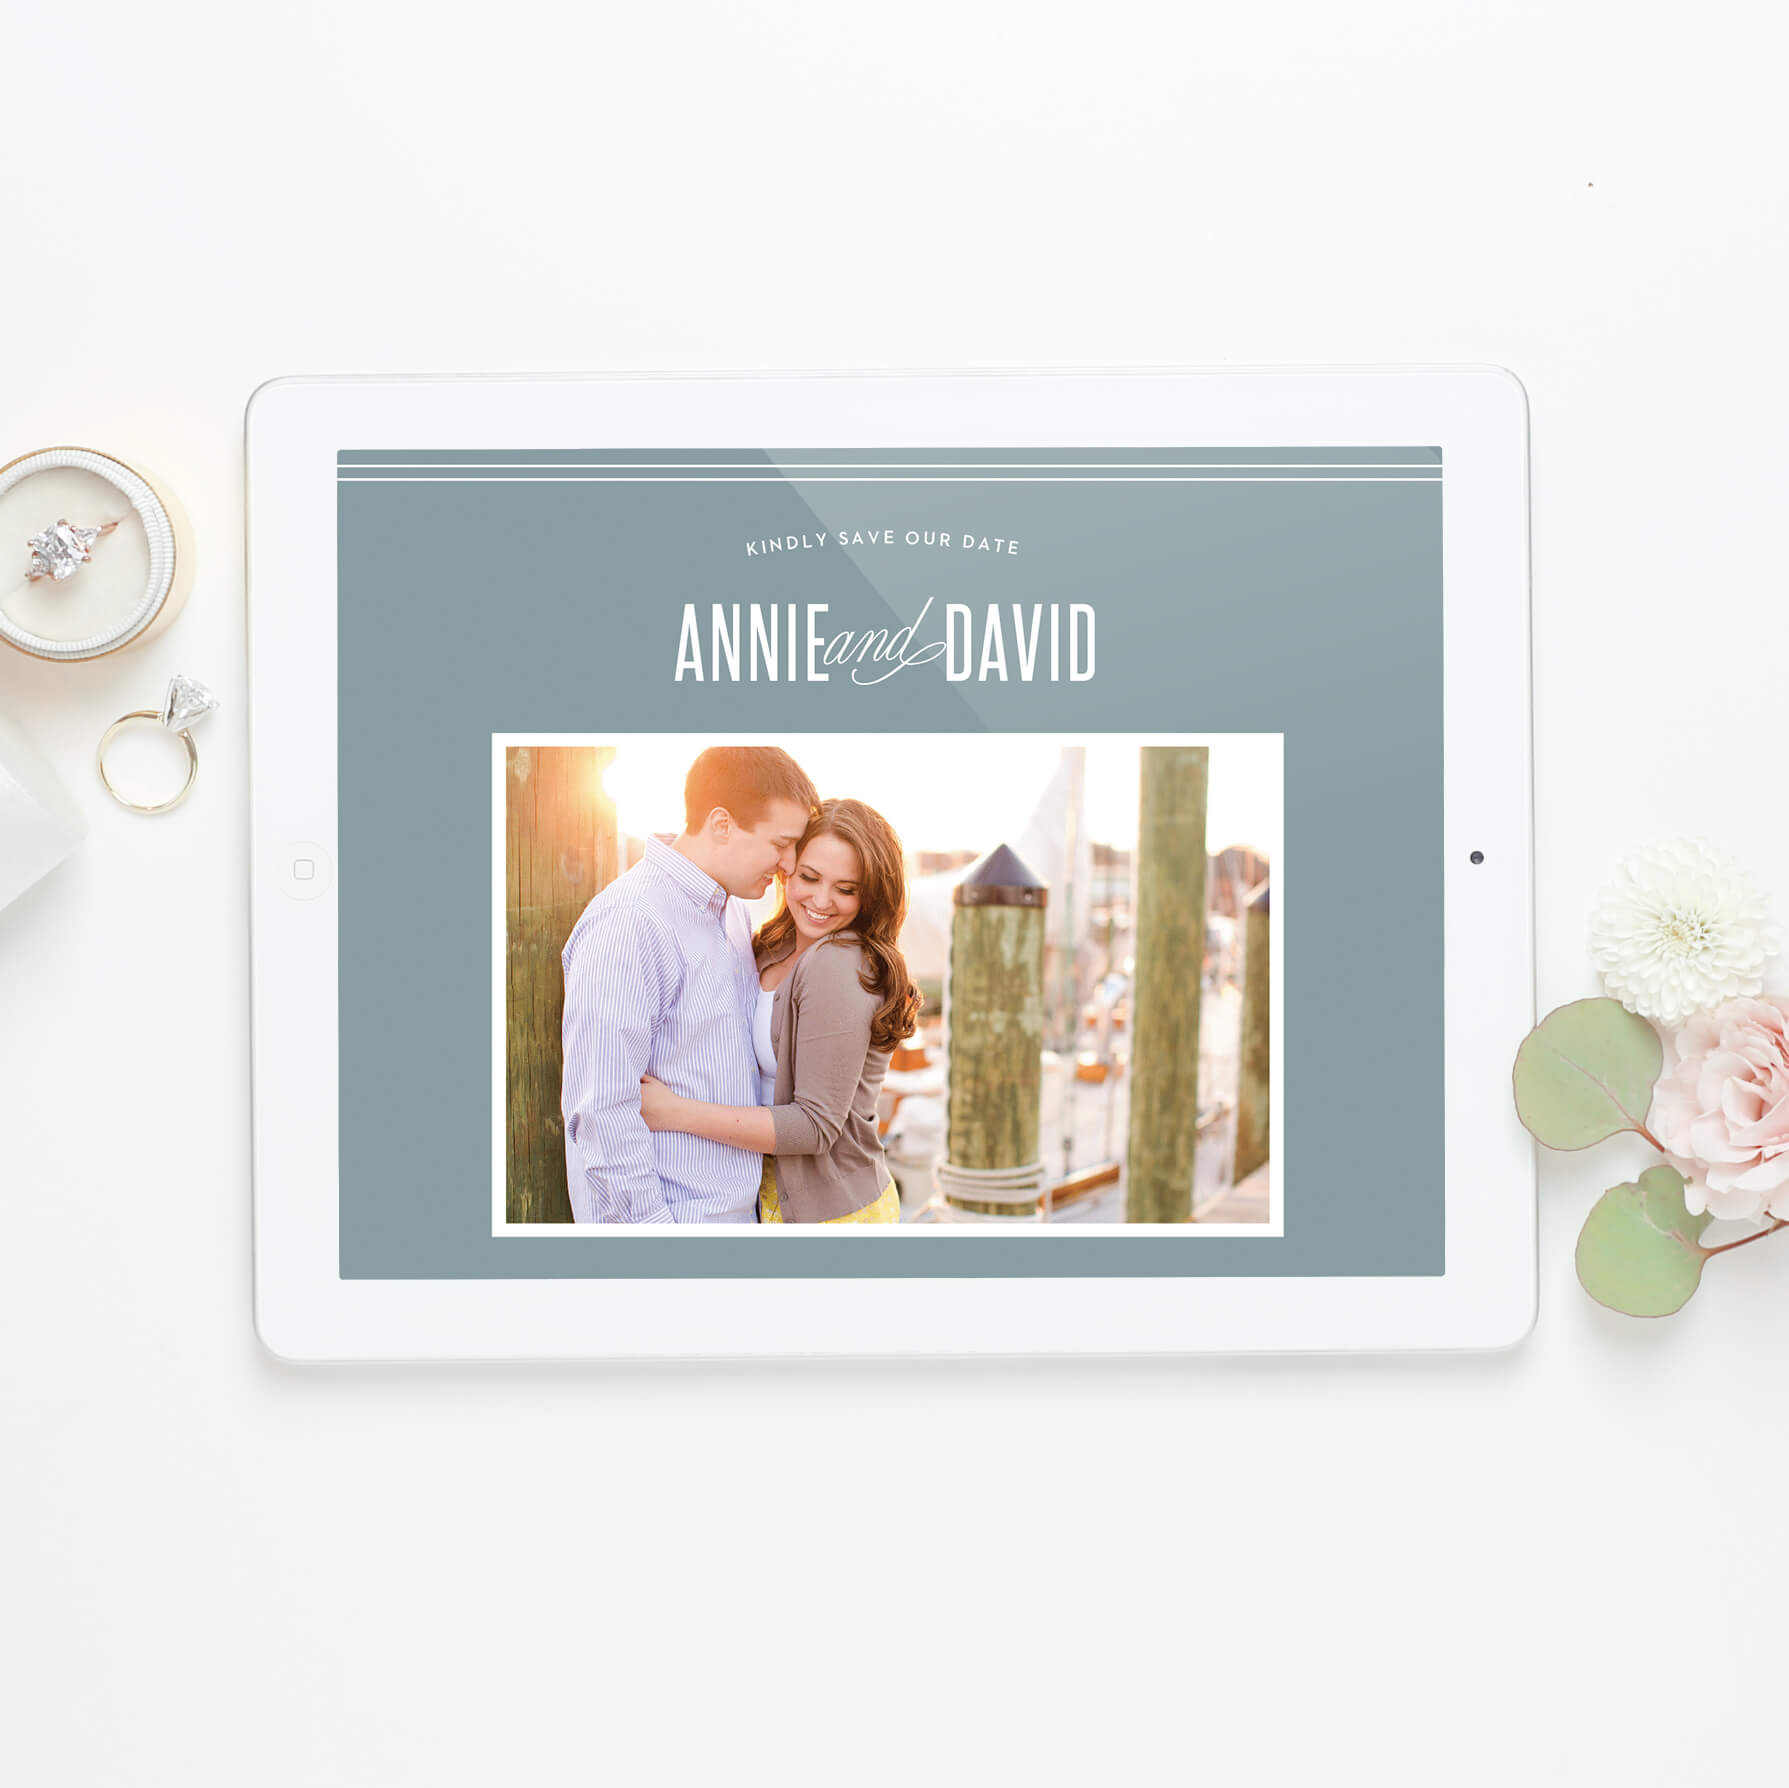 Beautiful Wedding Announcements.Beautiful Wedding Invitations Announcements And Websites With